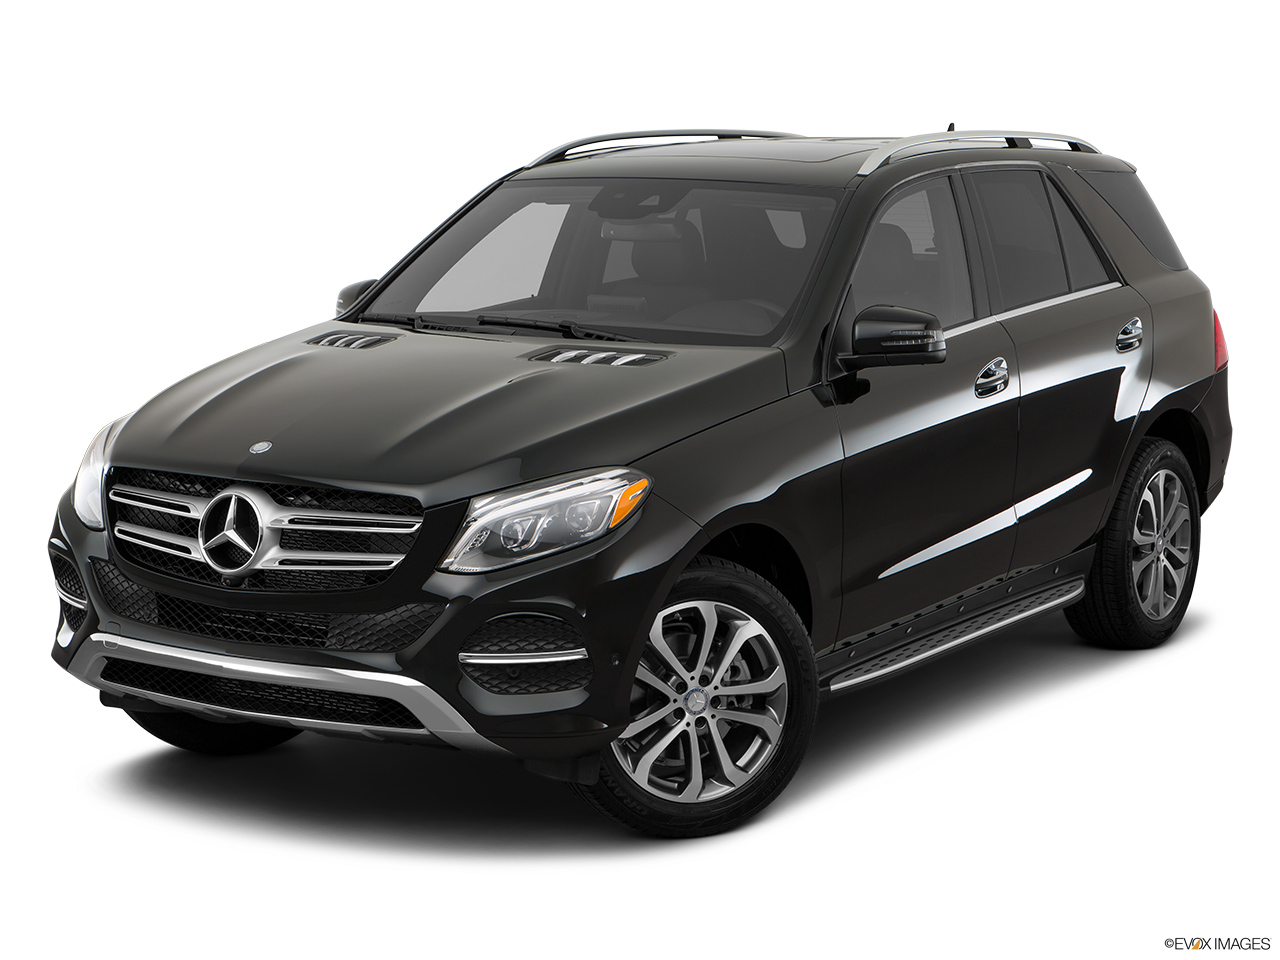 mercedes benz gle class 2017 gle 500 e 4matic in uae new car prices specs reviews photos. Black Bedroom Furniture Sets. Home Design Ideas